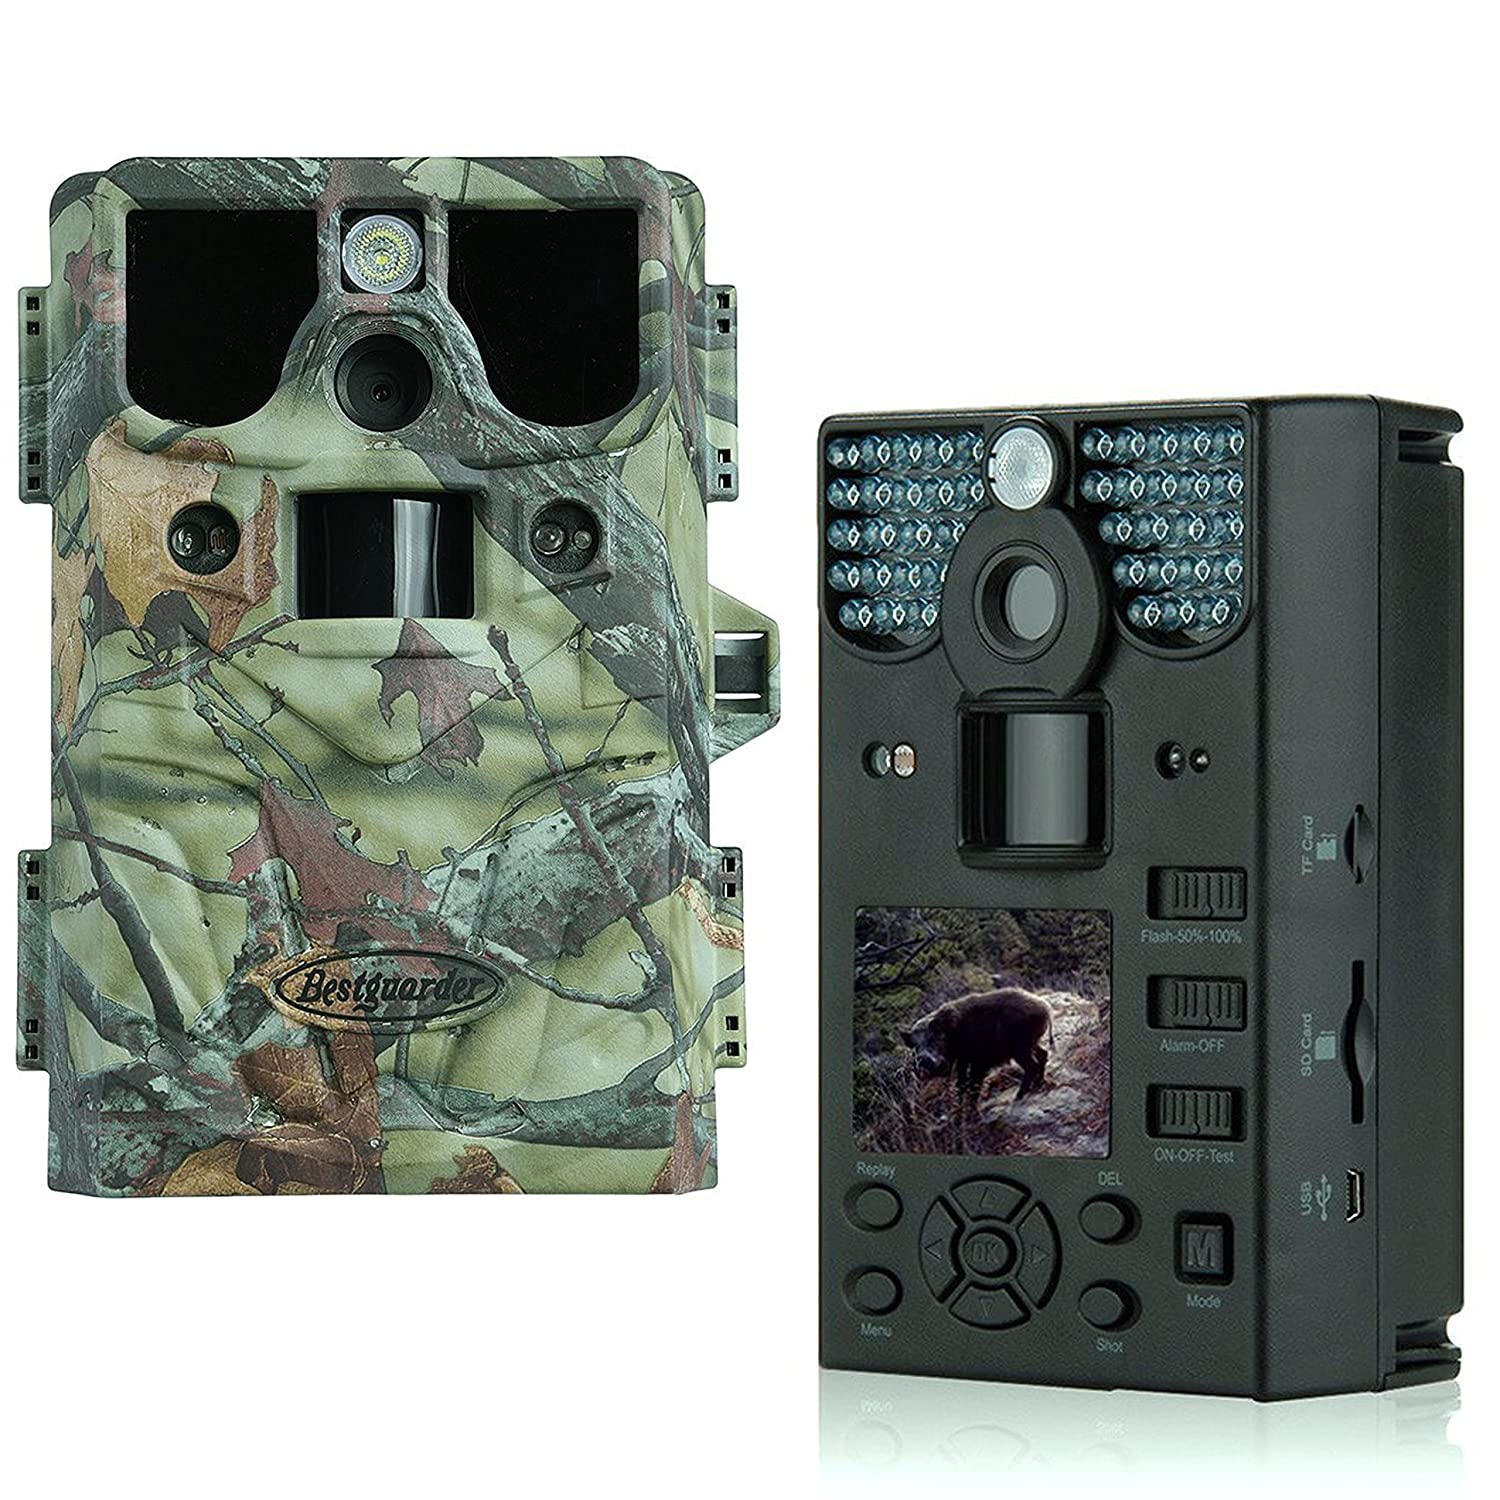 Was Ist Eine Tf Karte.Game Trail Camera 8 In 1 Hd Ip66 42pcs Ir Led Infrared Night Vision Video Cam With Game Call Function For Cold Blooded Animals 12mp Image 1280p